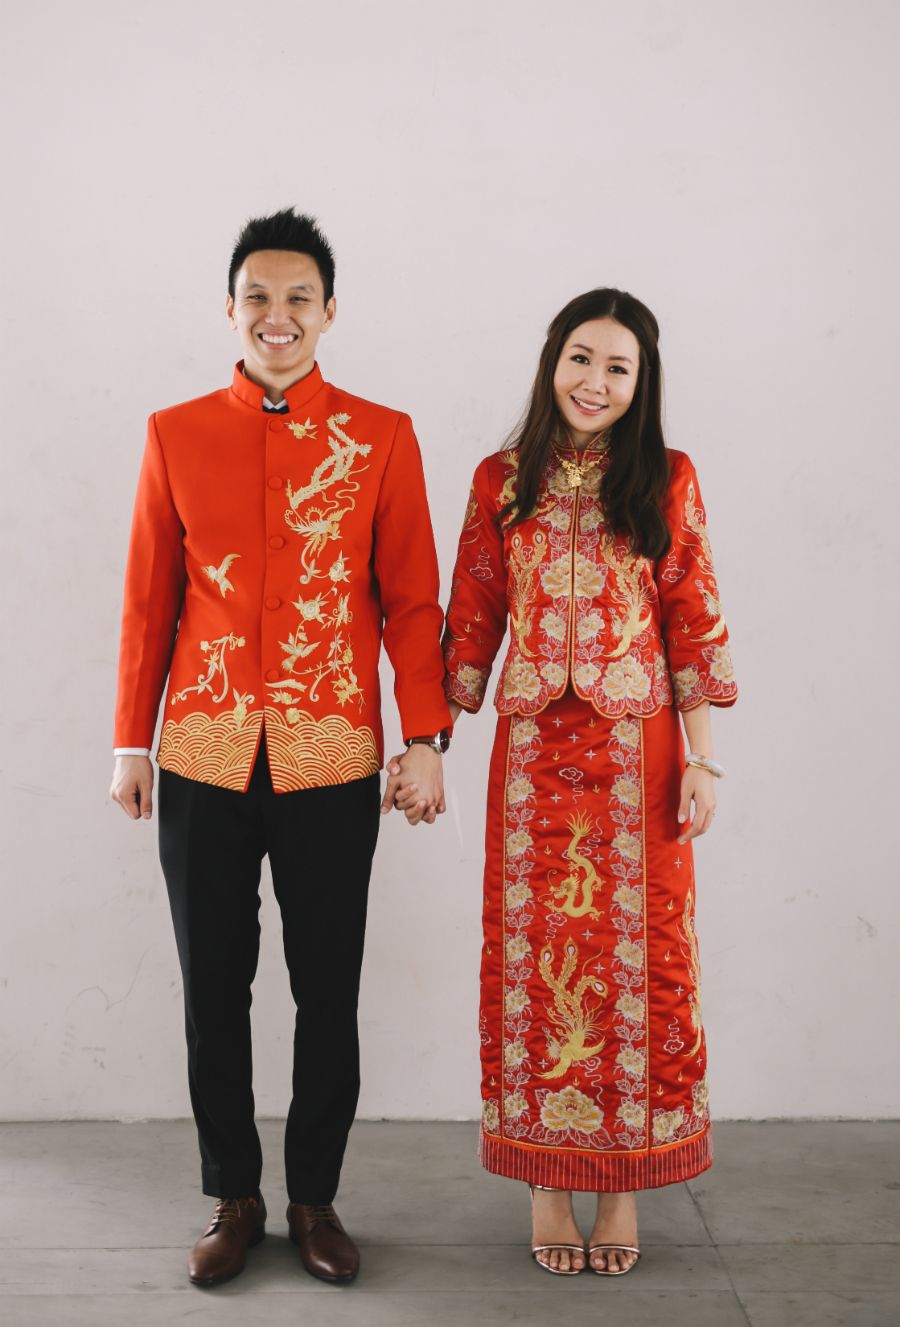 The Chinese Wedding Kua 3 Things To Know Her World Singapore Chinese Wedding Chinese Wedding Outfits Chinese Wedding Dress Traditional